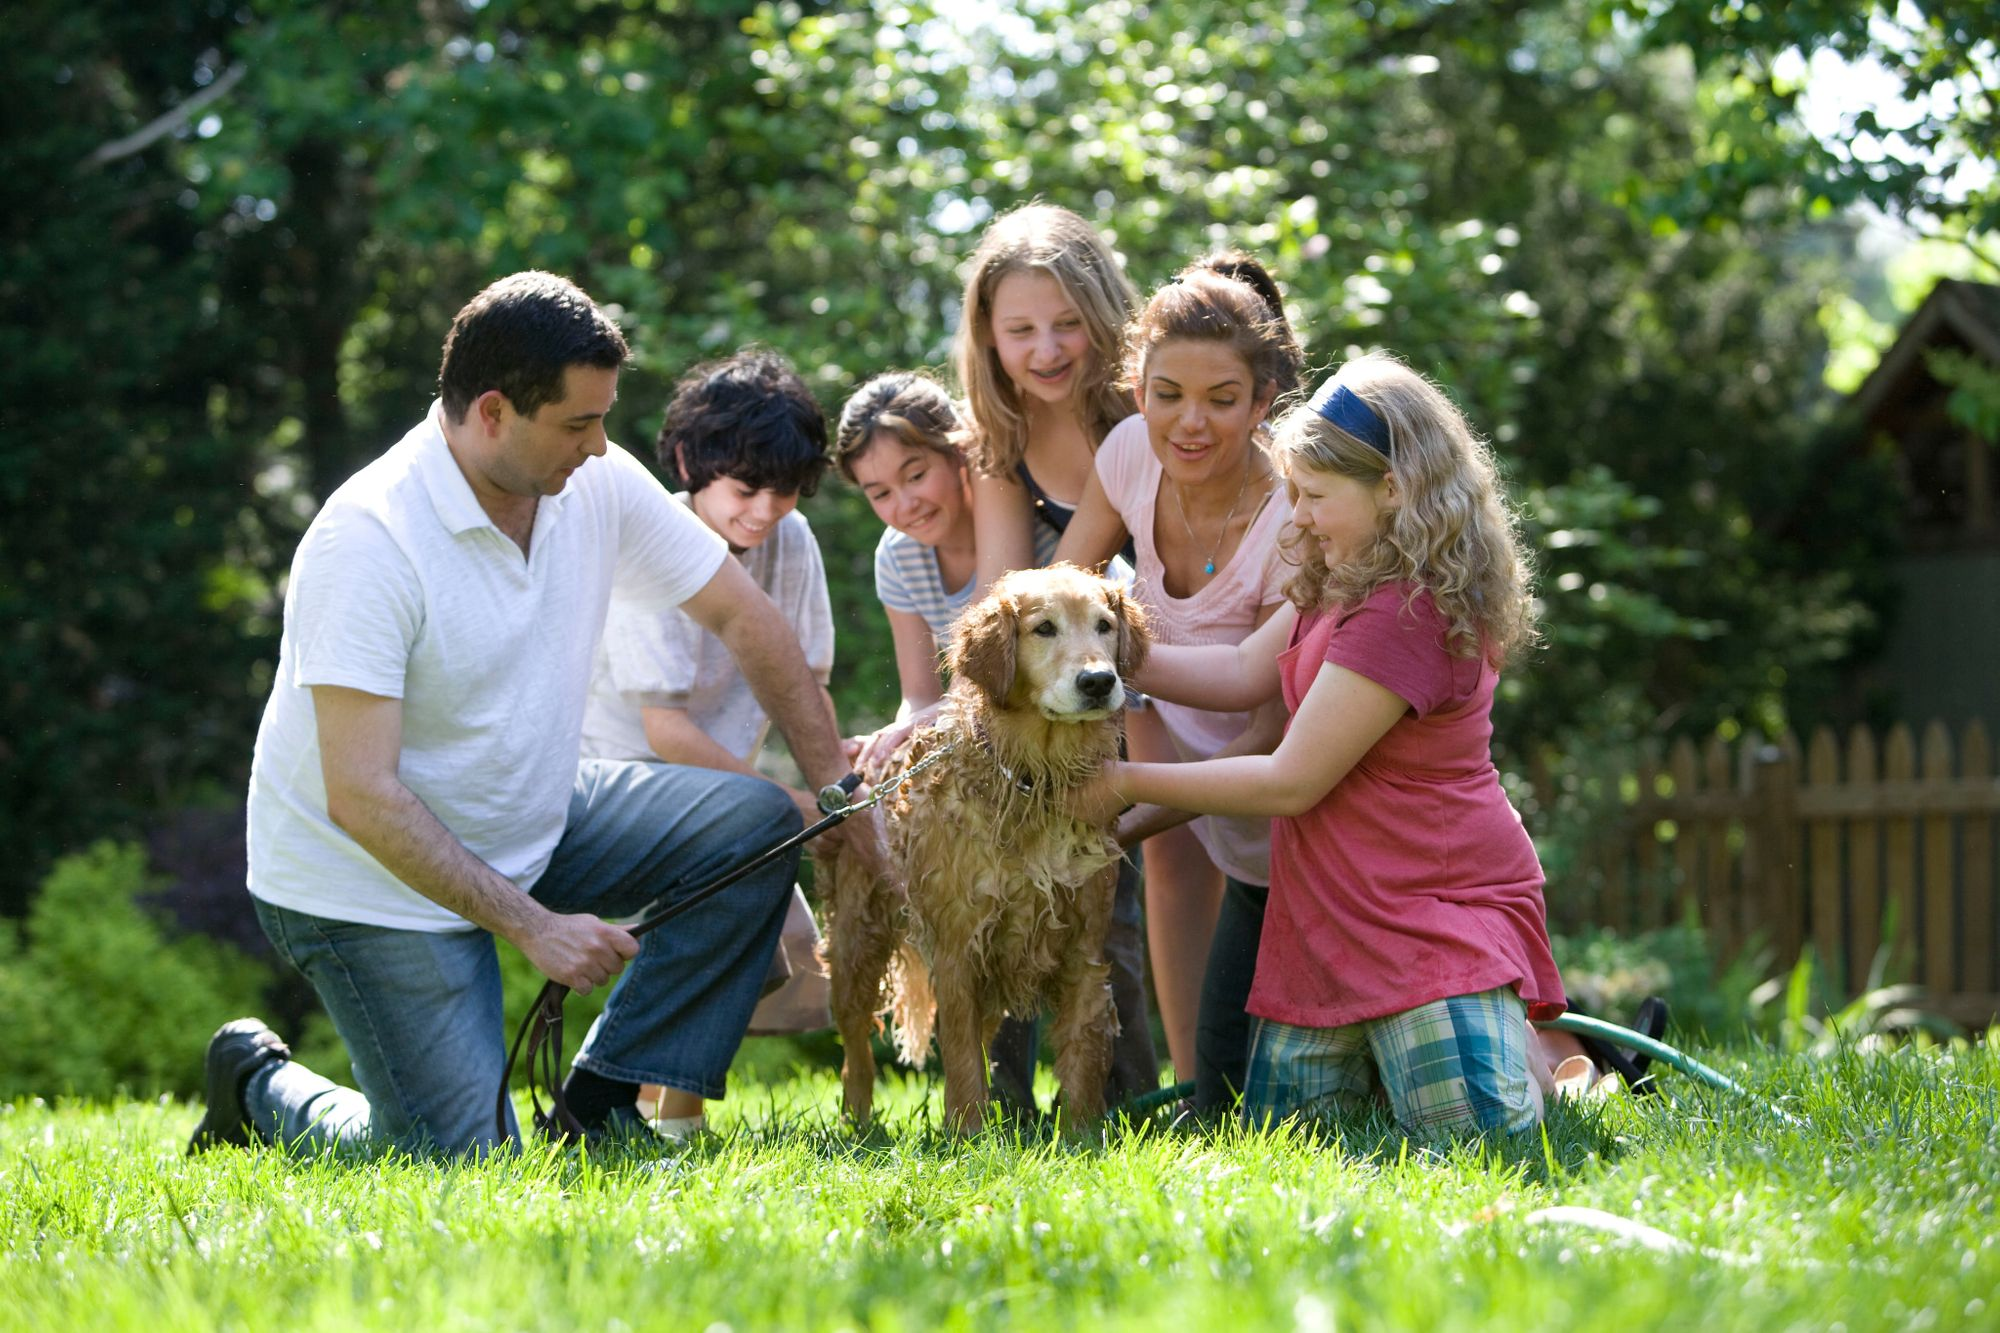 7 best dog breeds for families